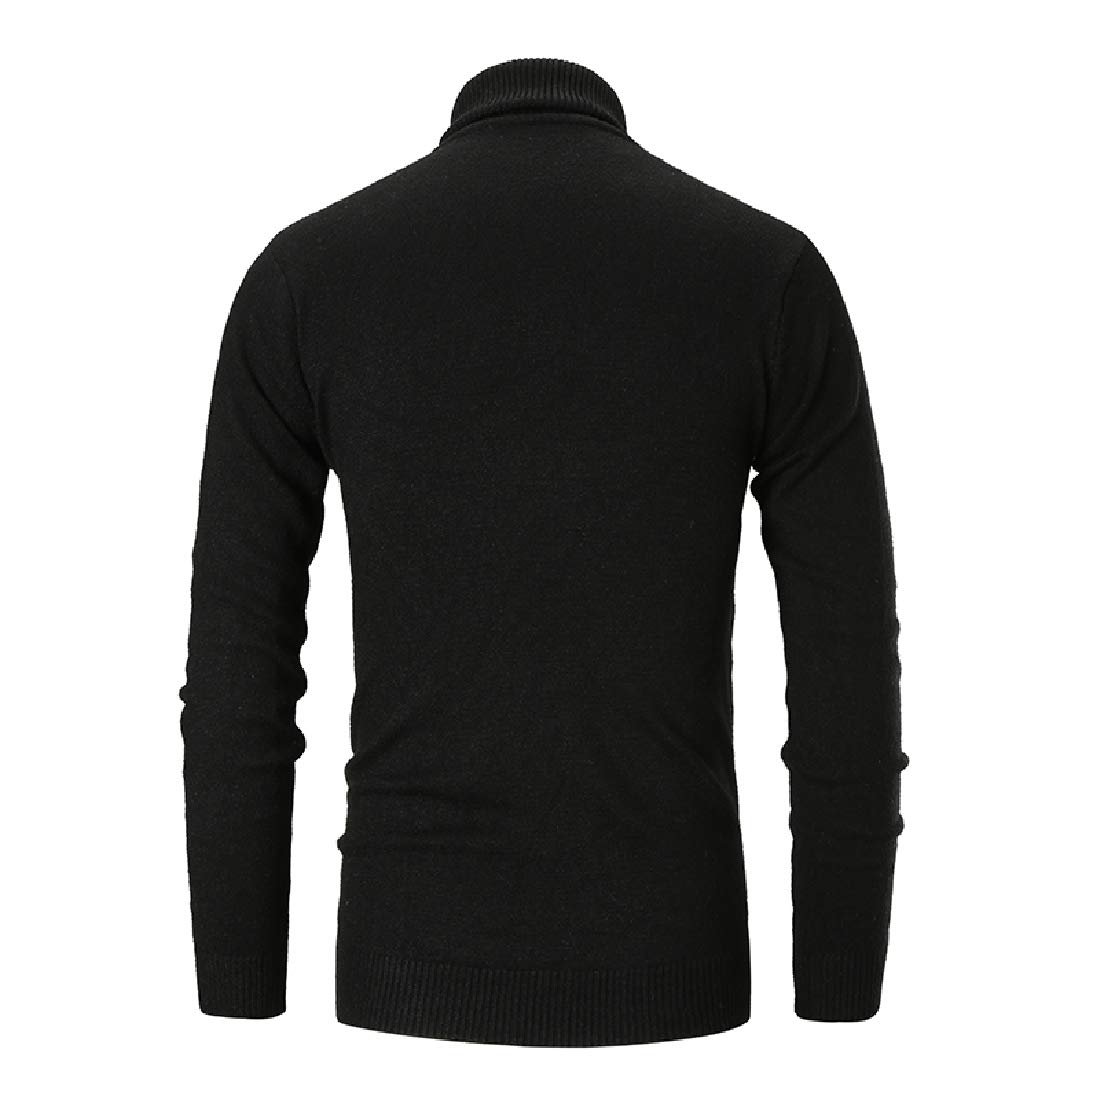 YUNY Mens Basic Solid-Colored Long Sleeve Fashion Fit Pullover Sweater Black XL